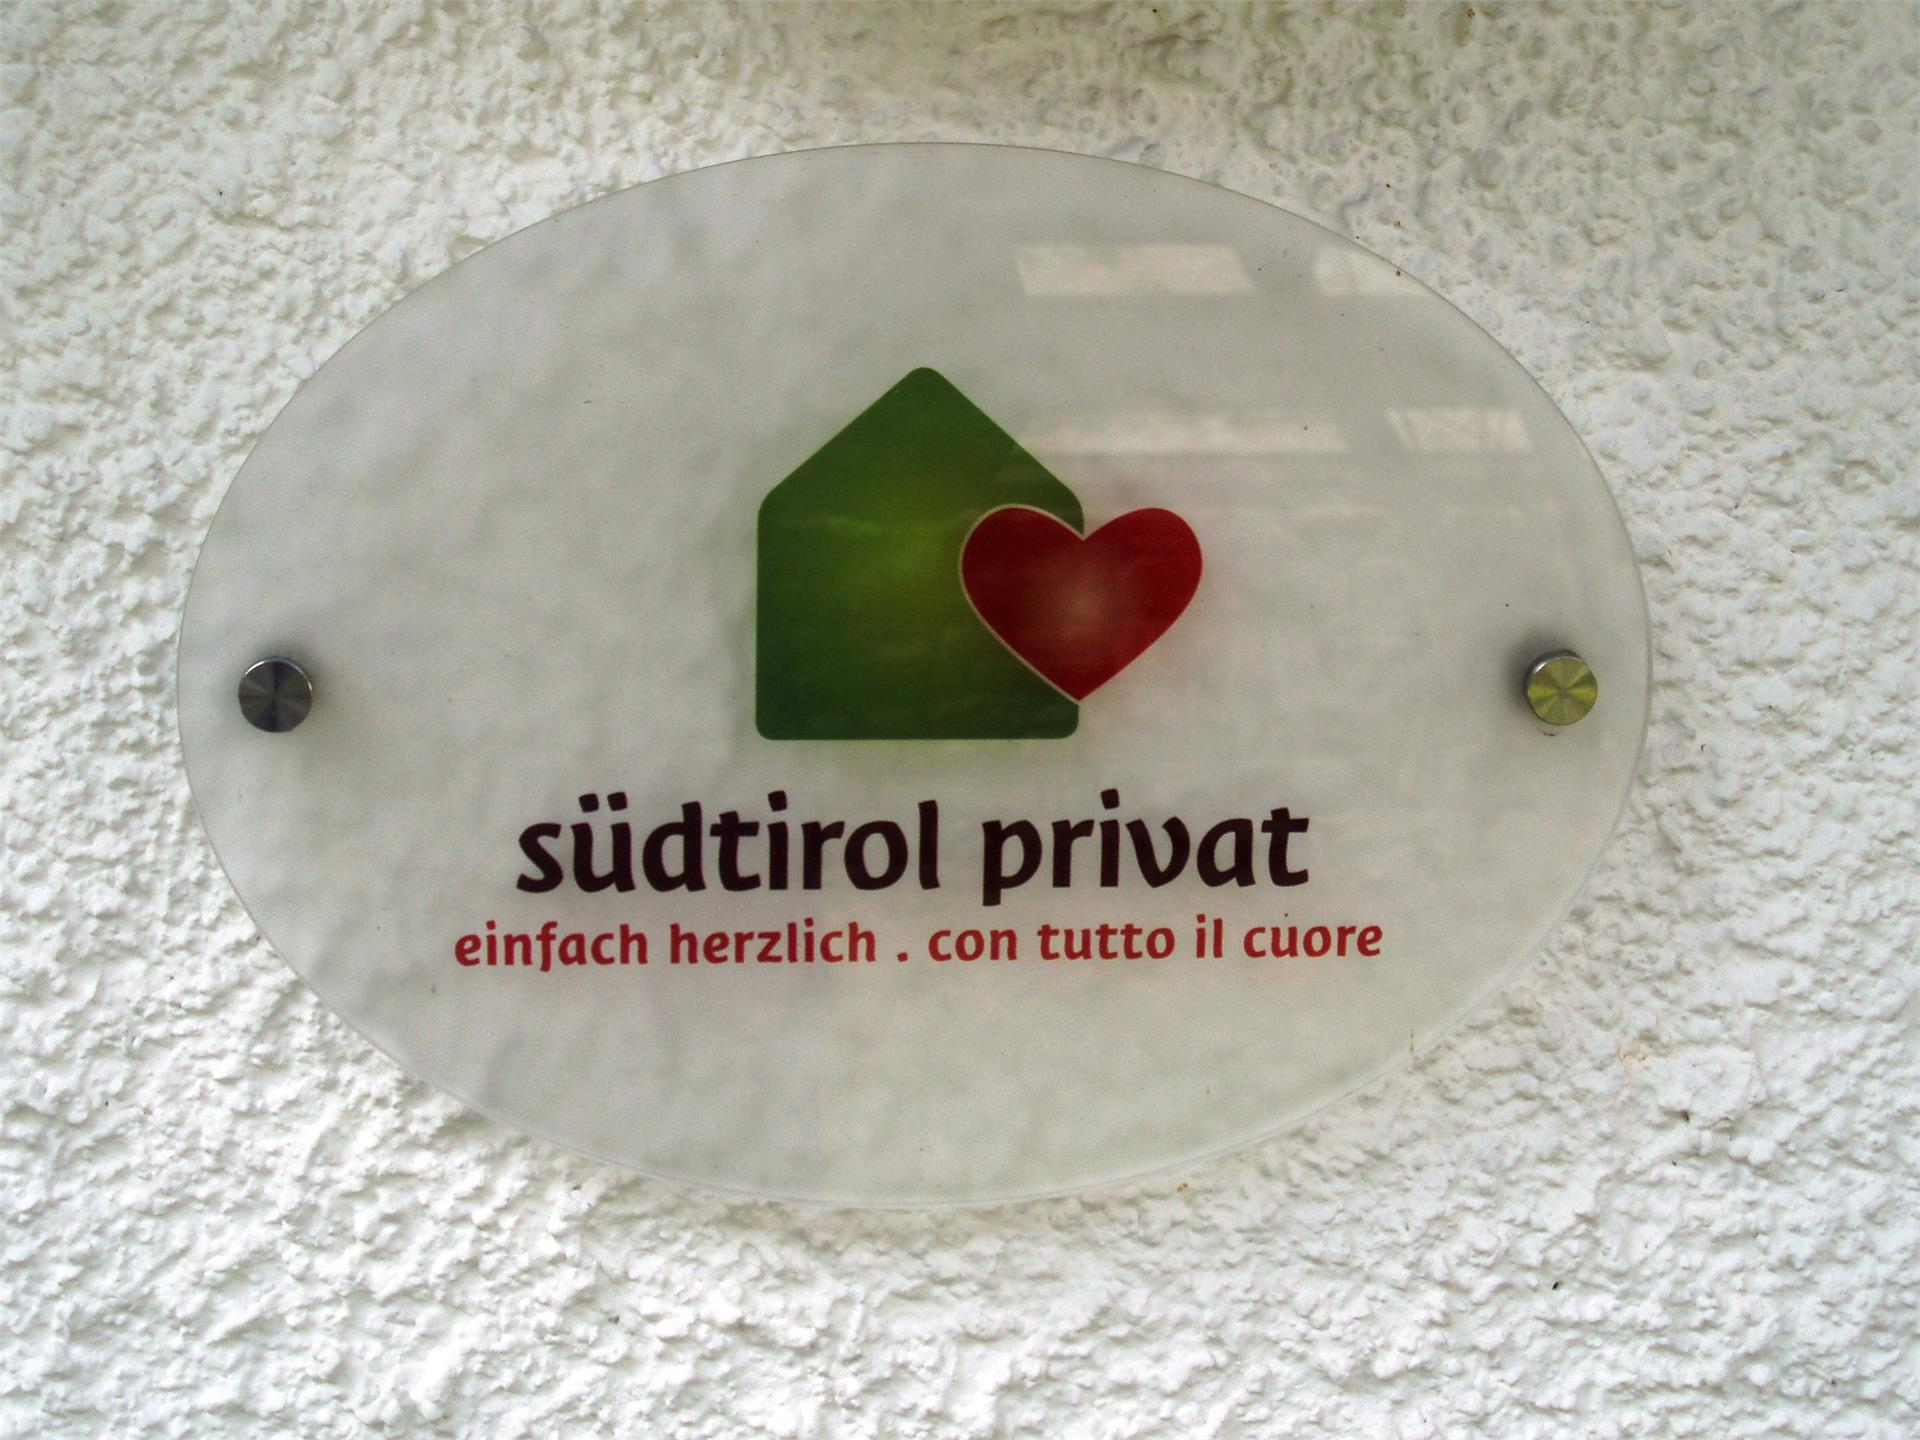 Member from Südtirol Privat